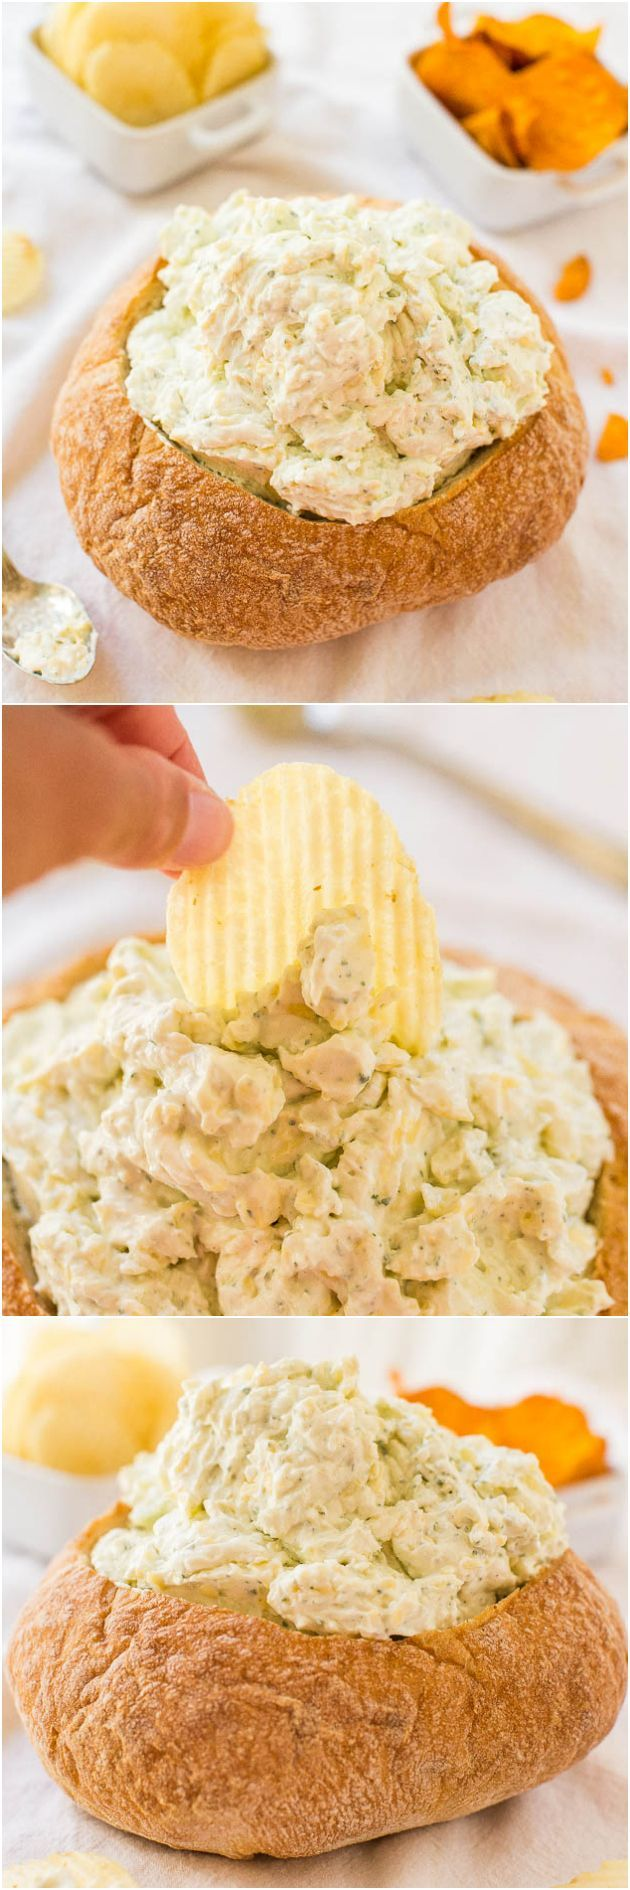 Creamy Ranch and Cheese Bread Bowl Dip - A no-bake, easy dip that's packed with bold flavor! A perfect party dip & you get to eat the bowl!